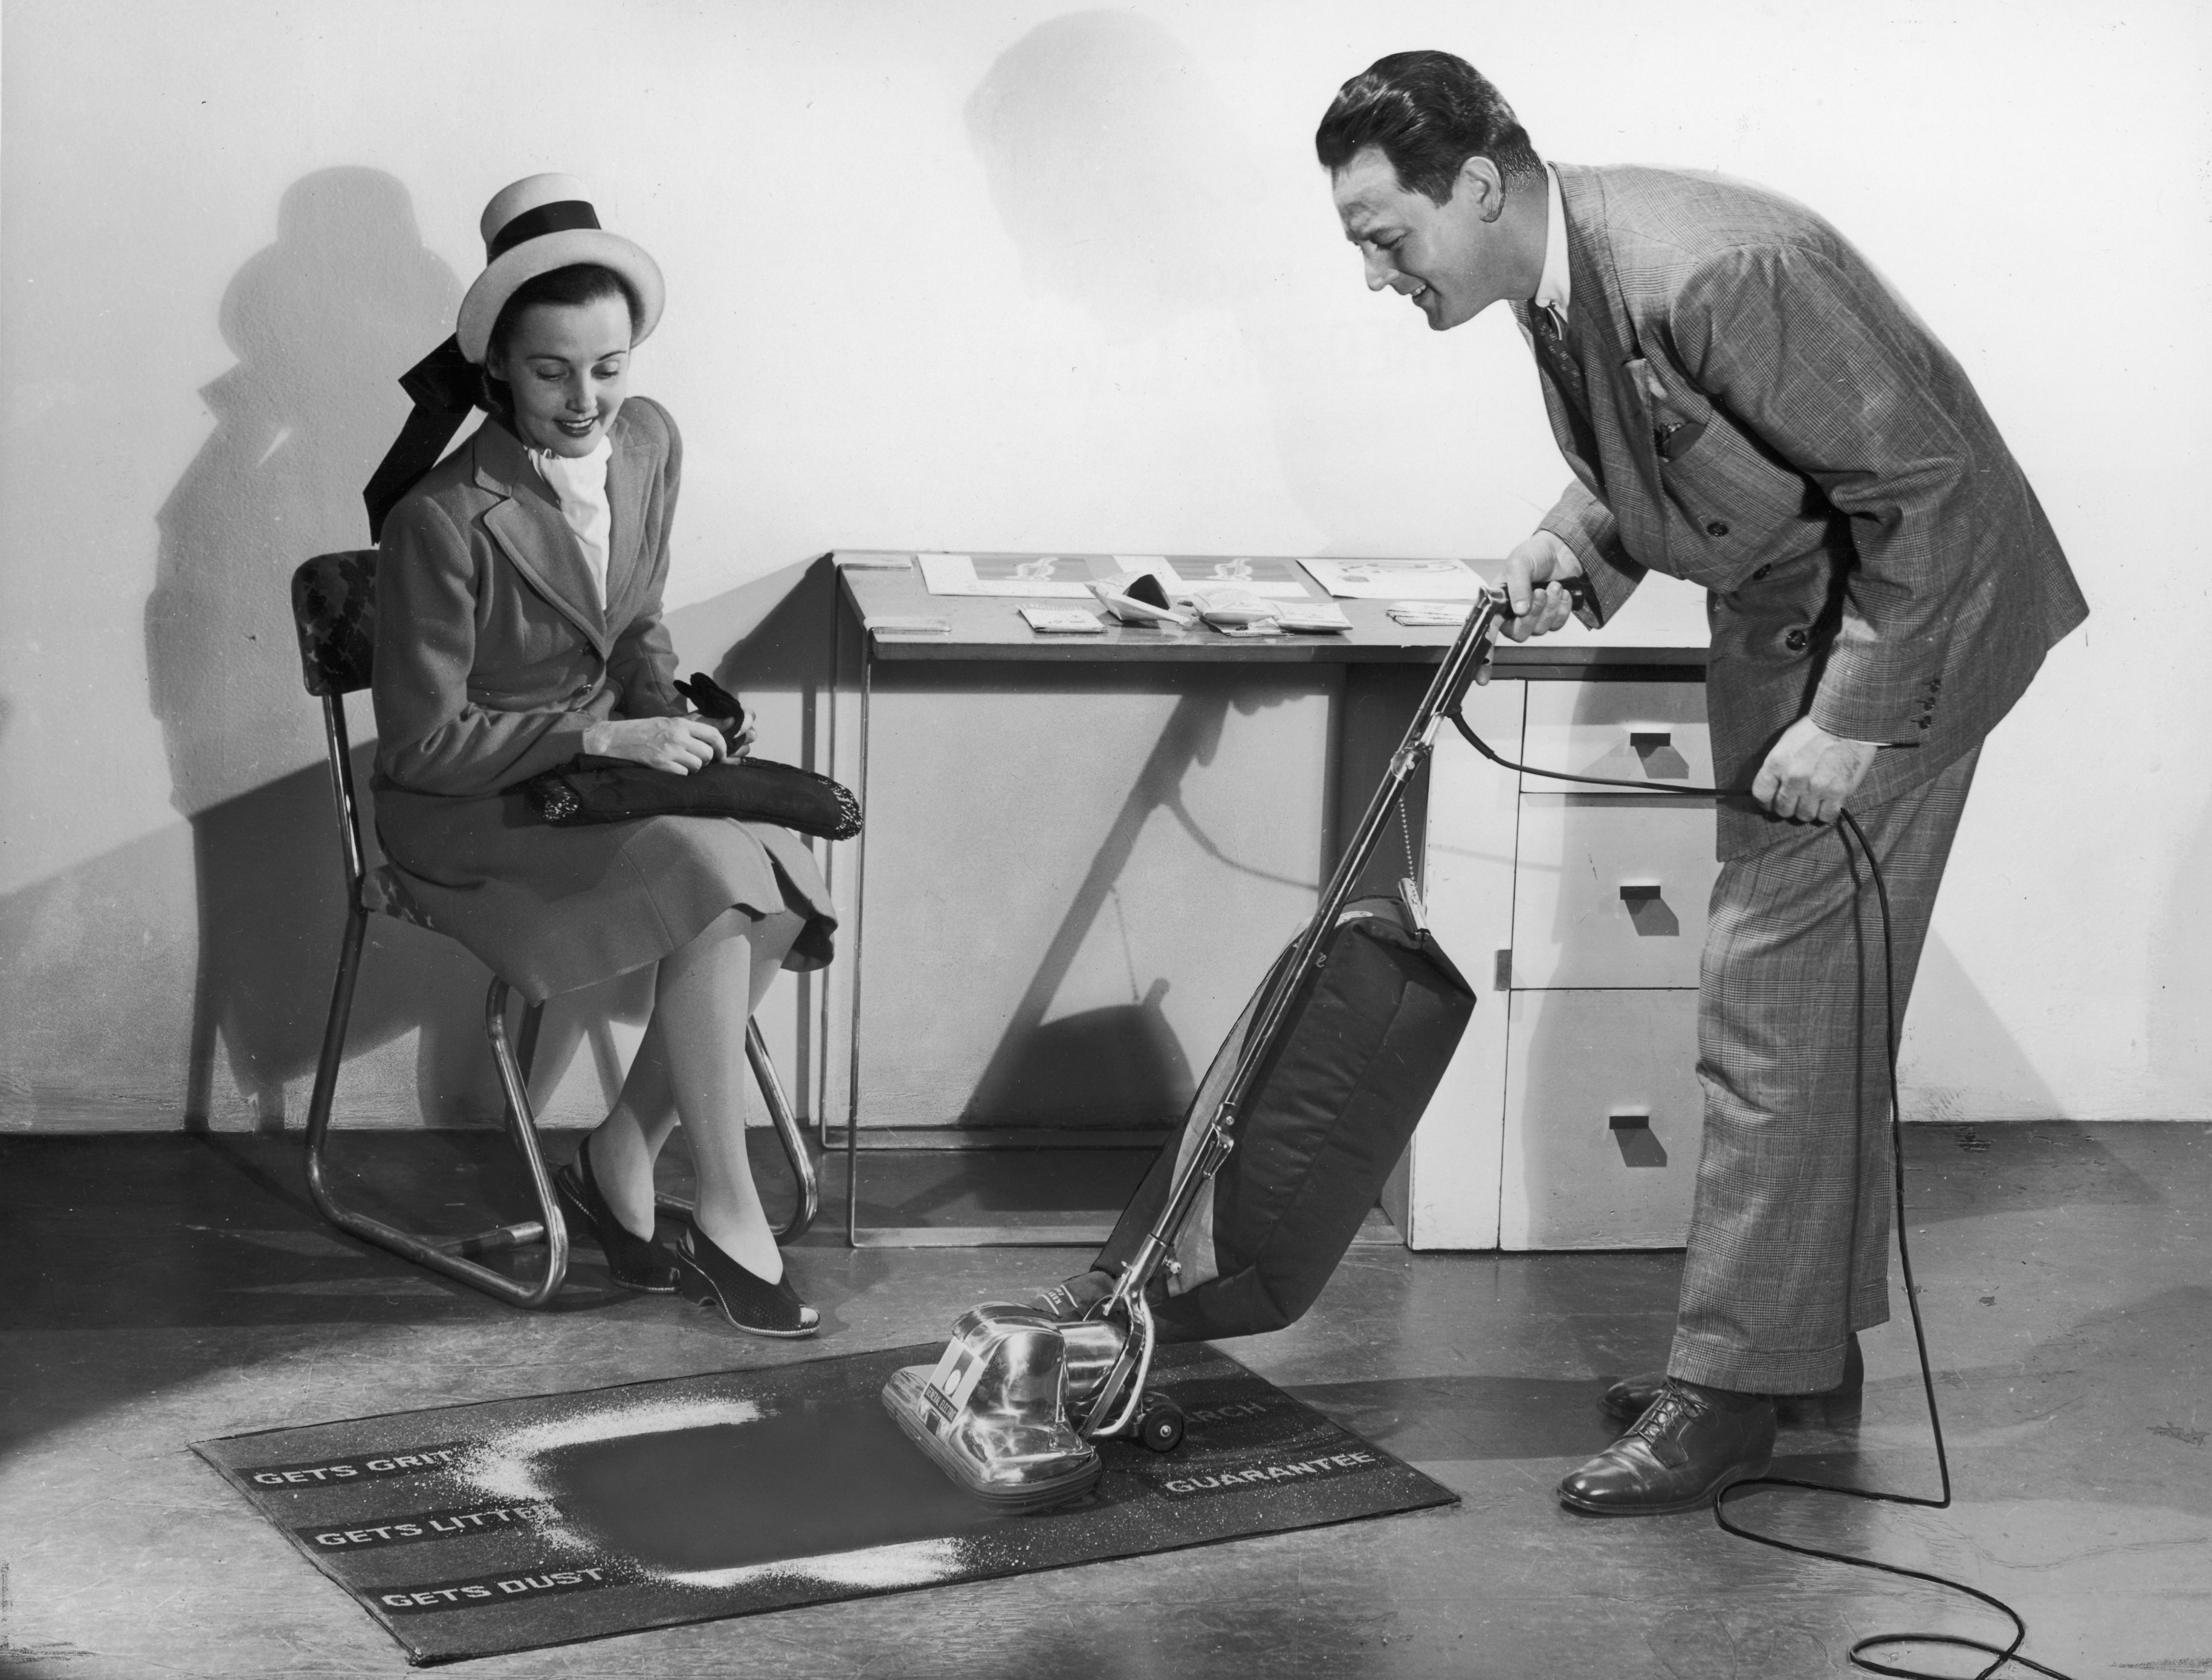 A salesman demonstrates the effectiveness of a General Electric vacuum cleaner to a prospective customer. | Photo: Getty Images